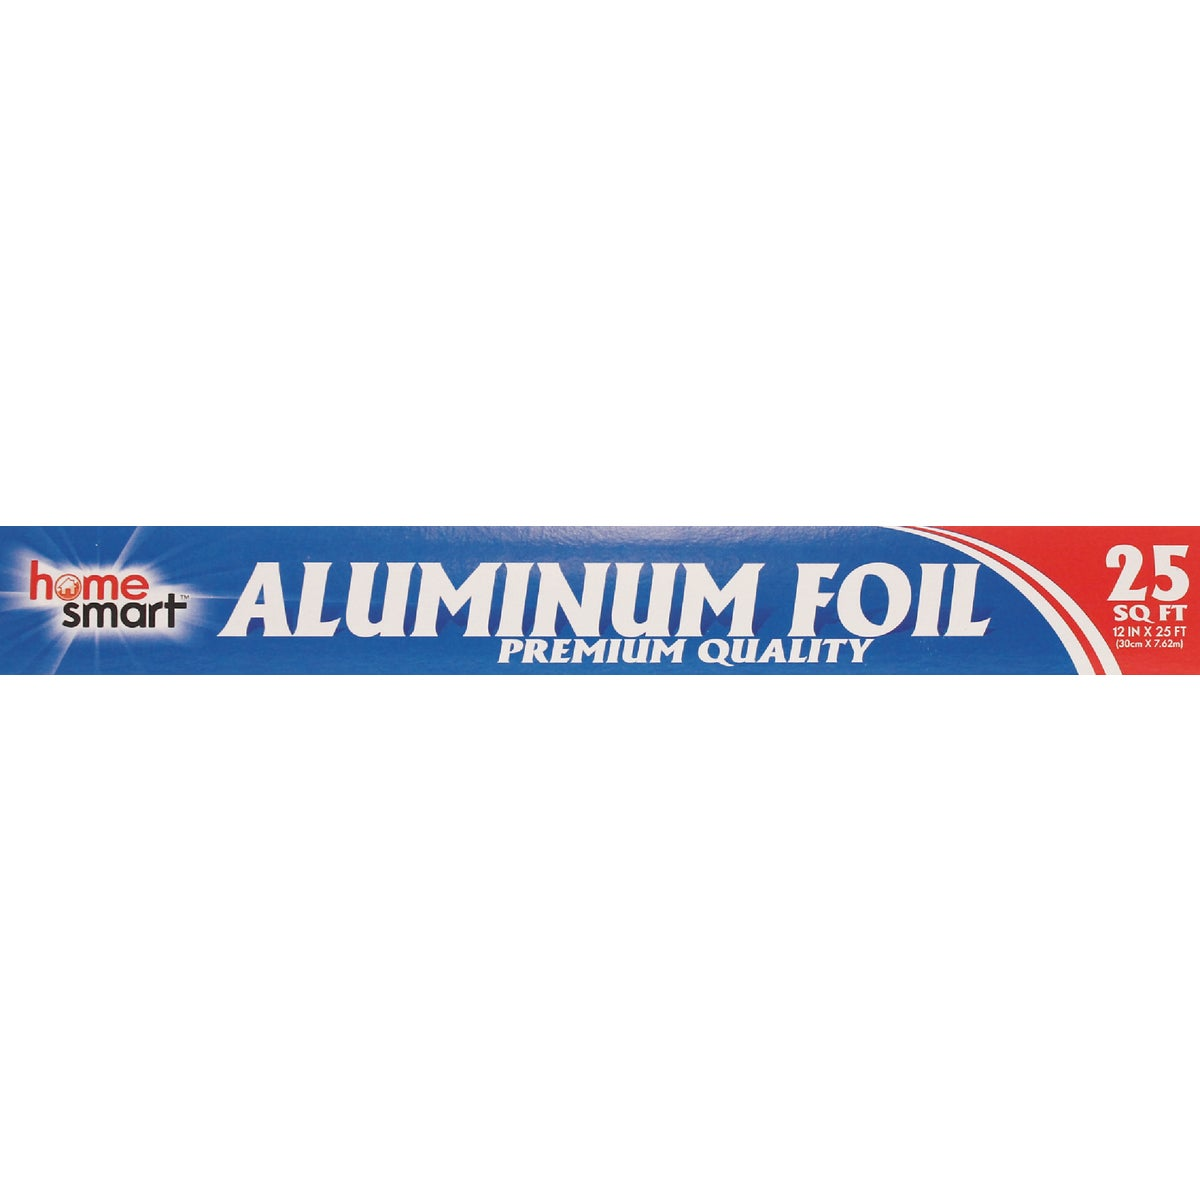 25 SQ FT ALUMINUM FOIL - 92799-5 by Personal Care Prod